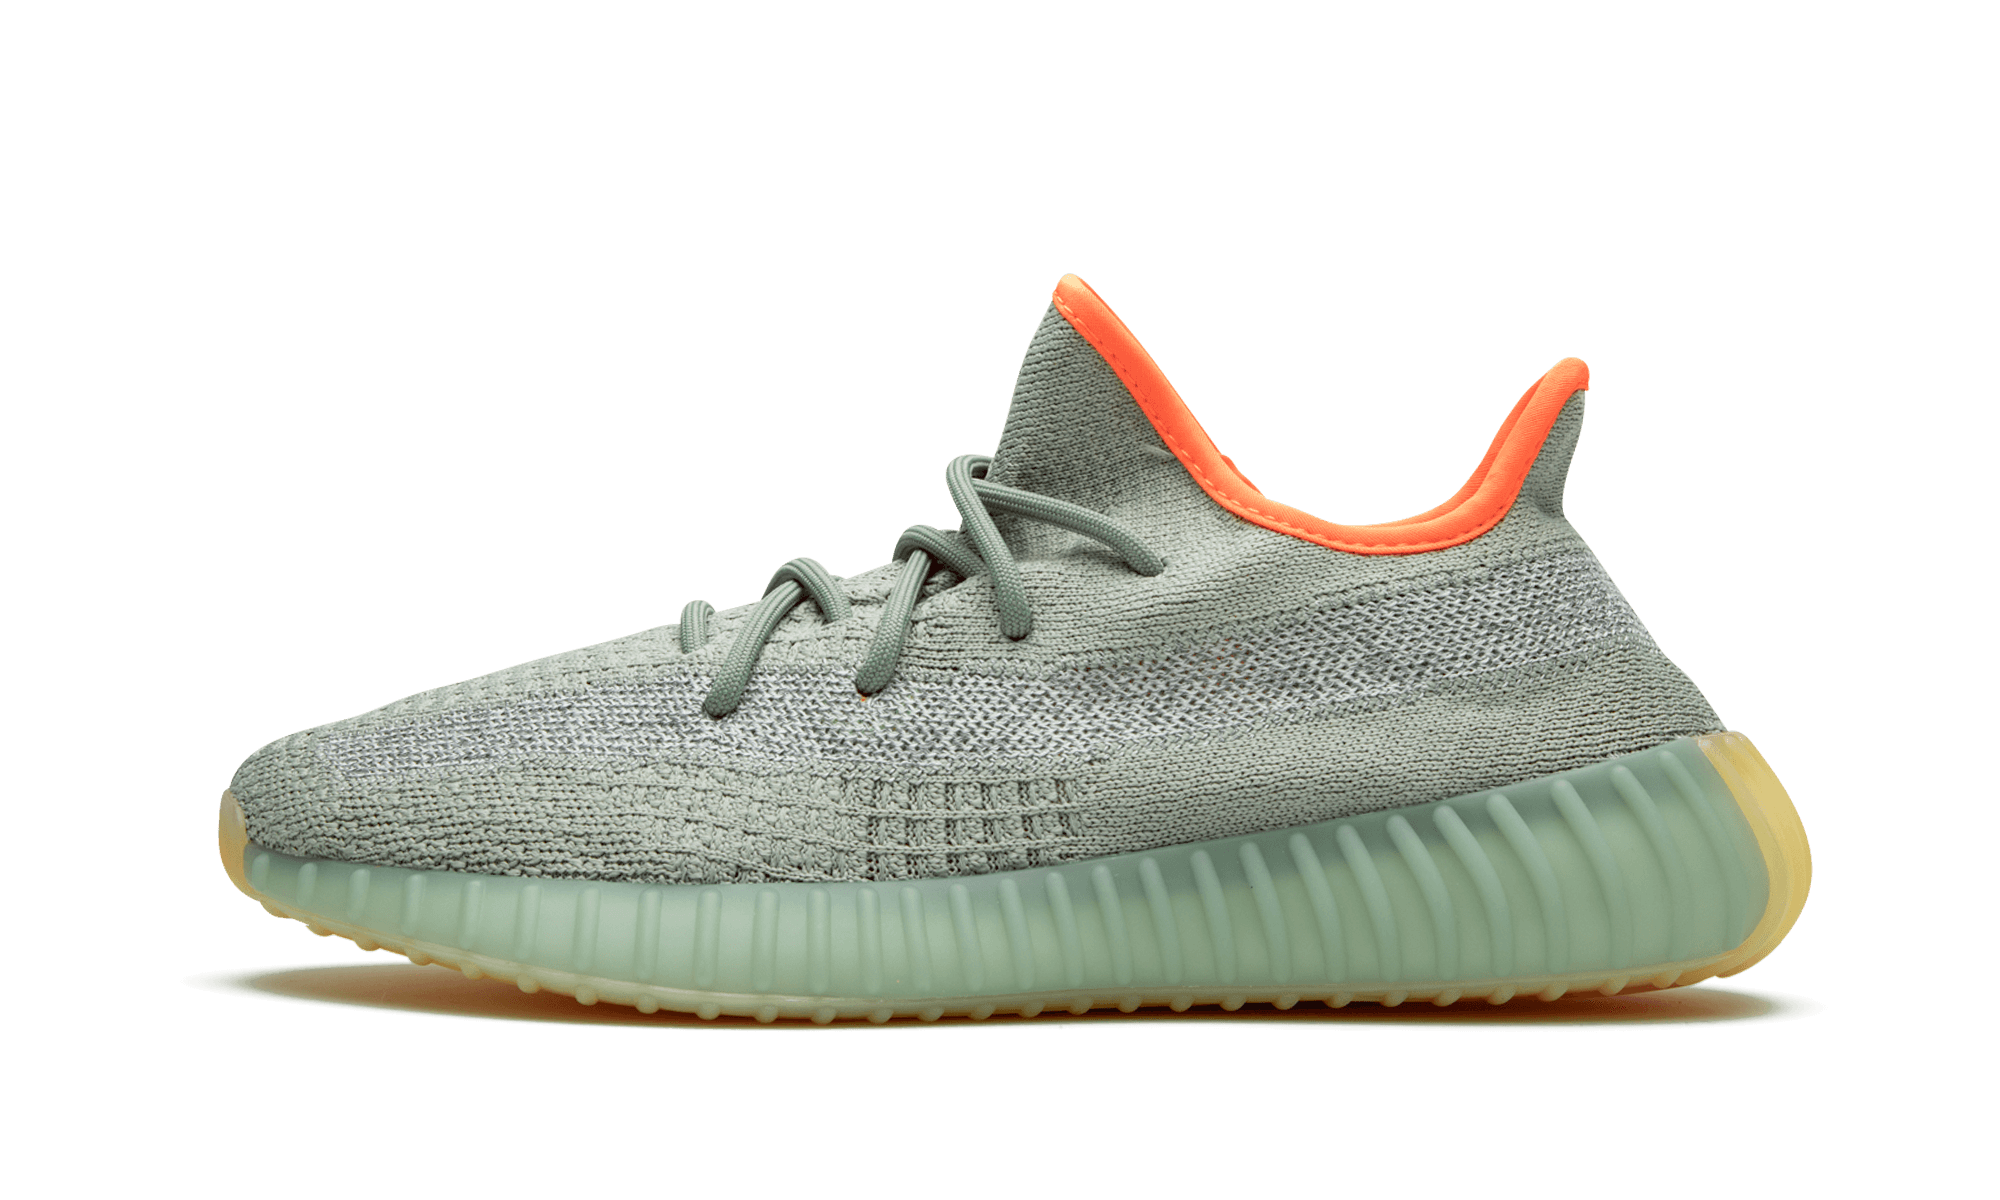 For sale the best Adidas Yeezy Boost 350 V2 Desert Sage